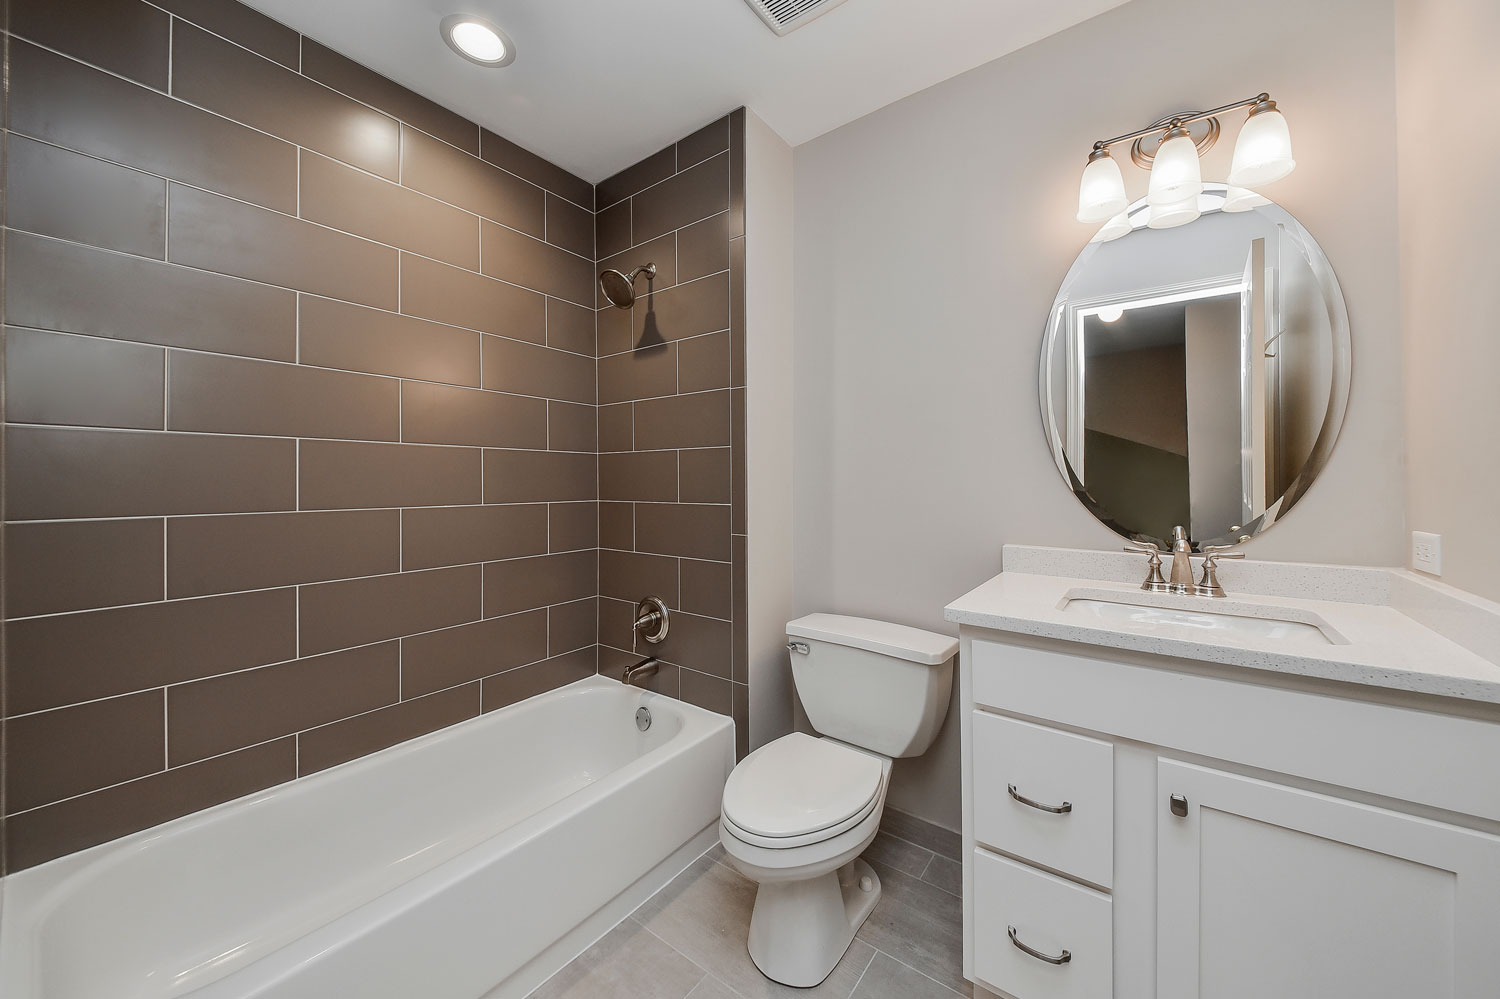 Charles cindy 39 s hall bathroom remodel pictures home for Remodeling ideas for bathrooms